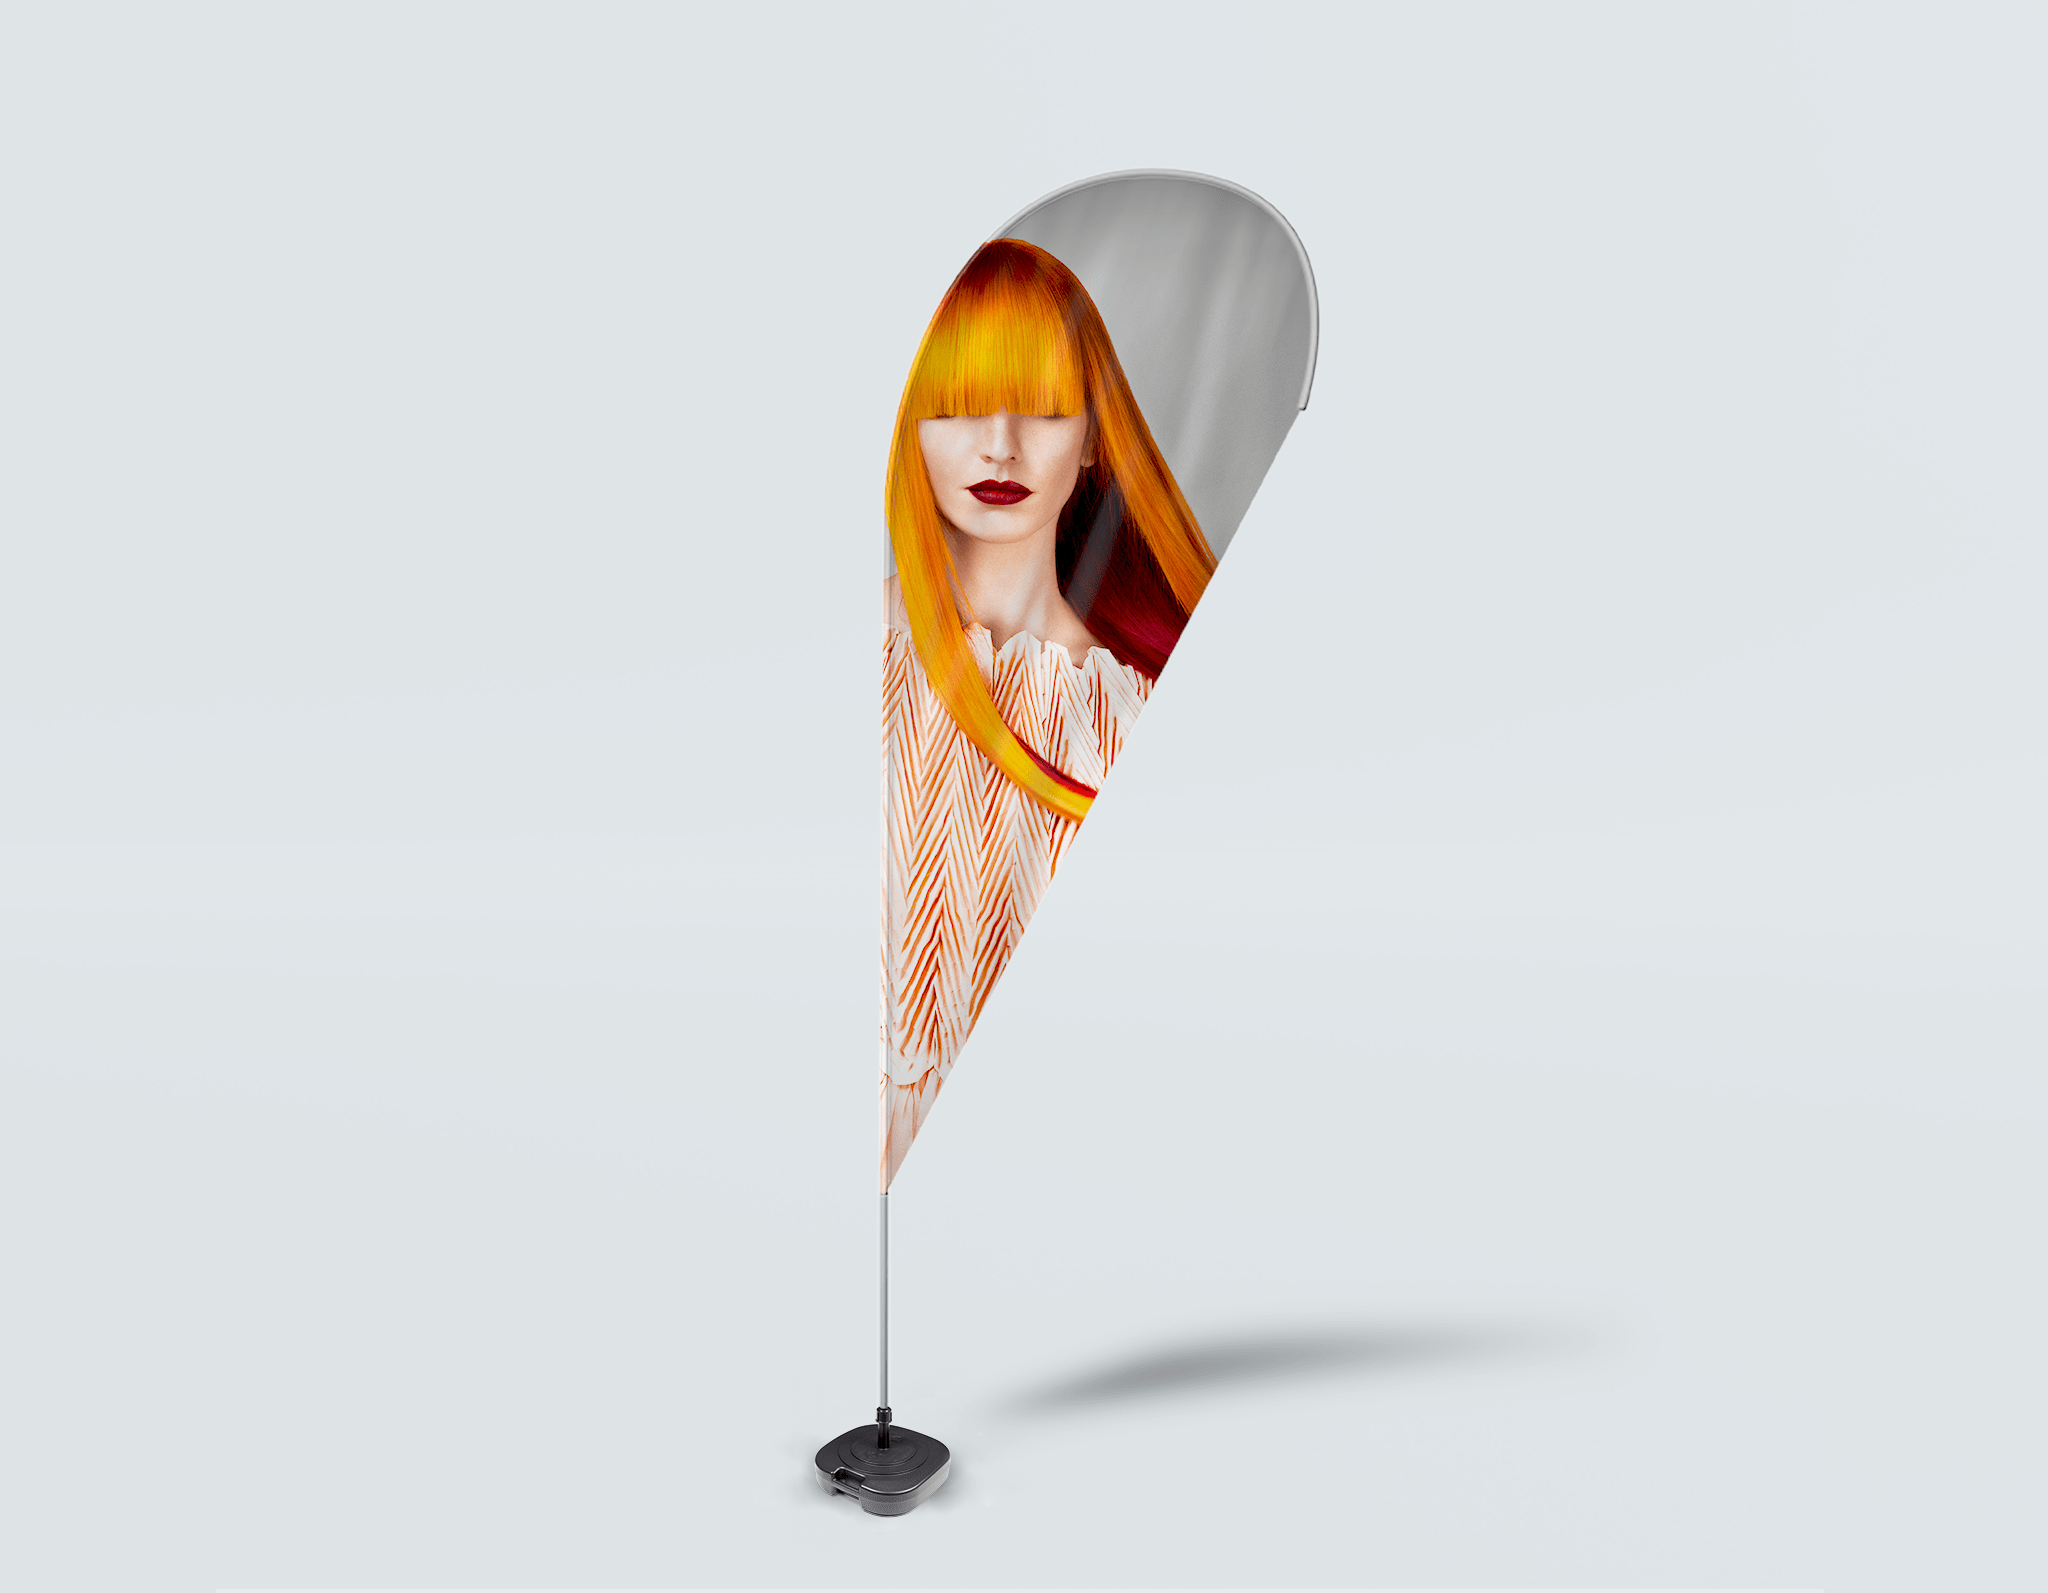 Salon Beach Flag - Front de femme aux longs cheveux de couleur orange